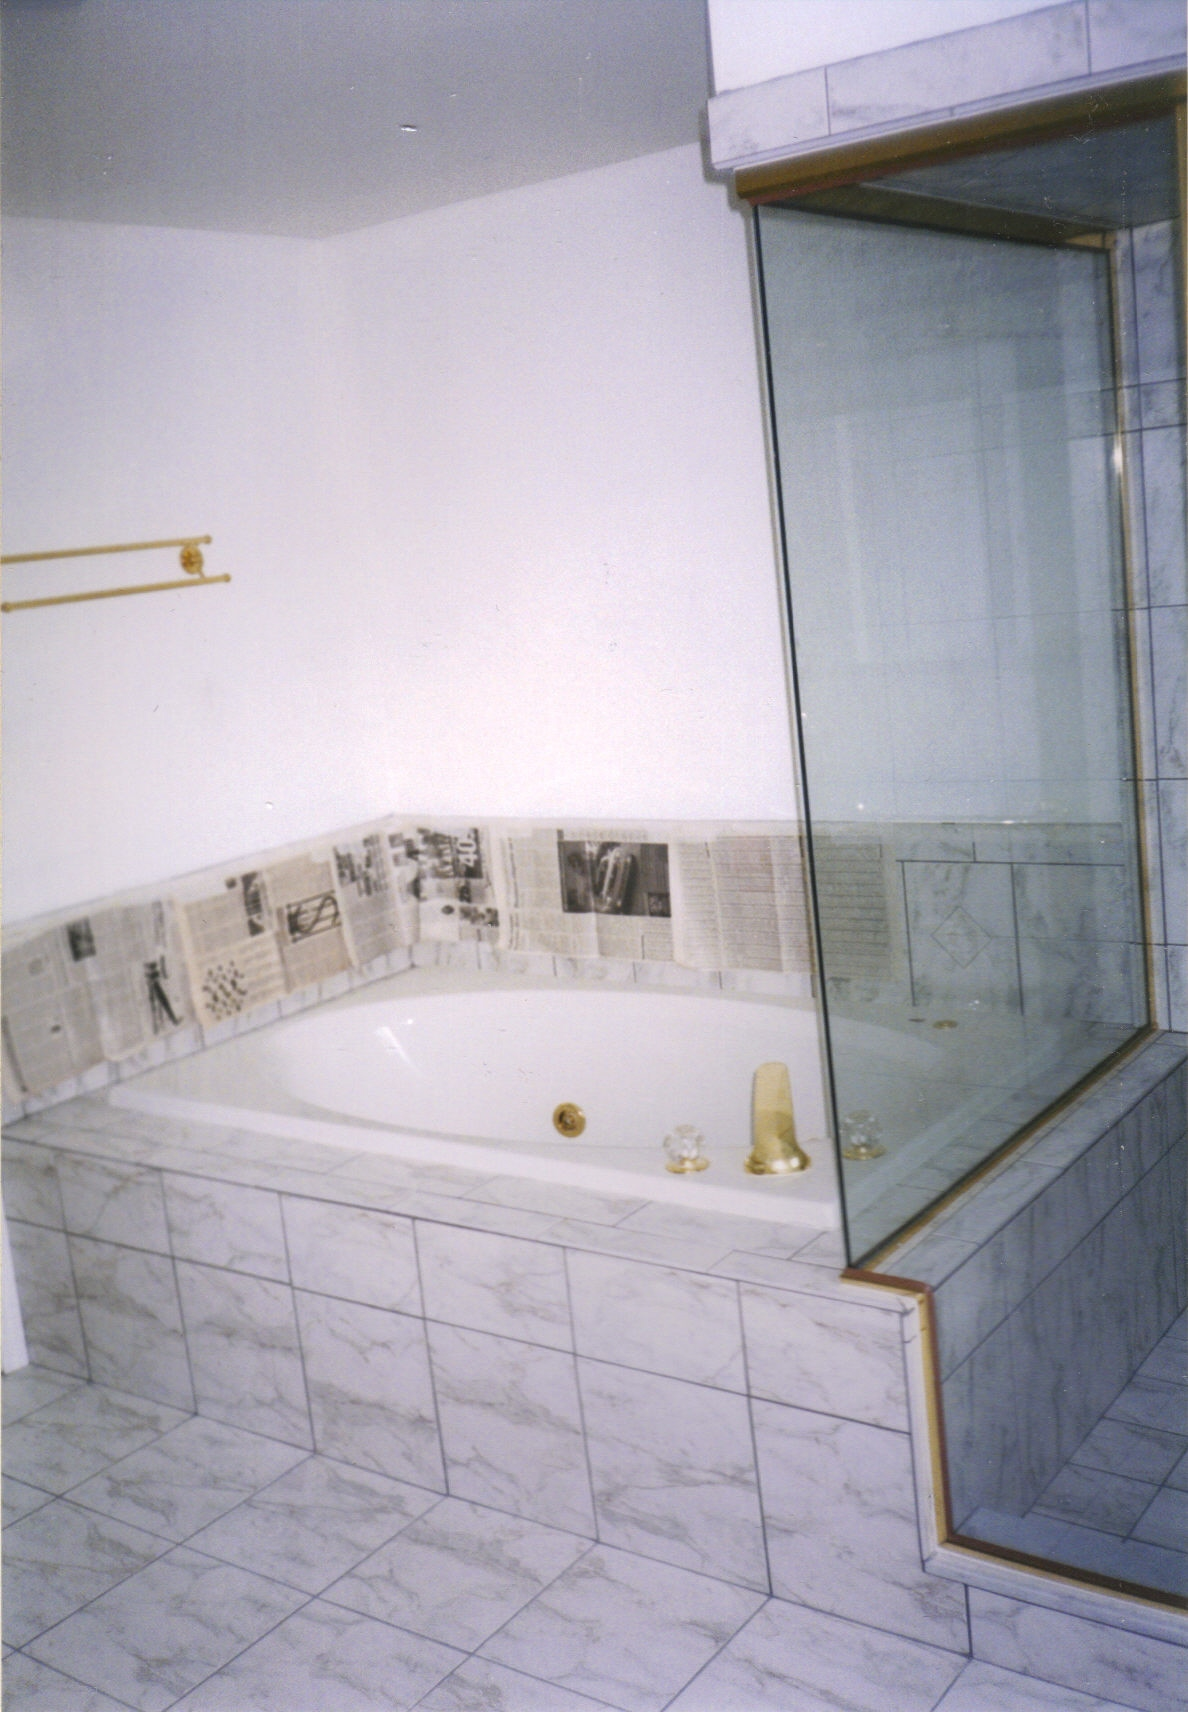 gthree.net - Kitchens & Baths COOKING & BATHING\